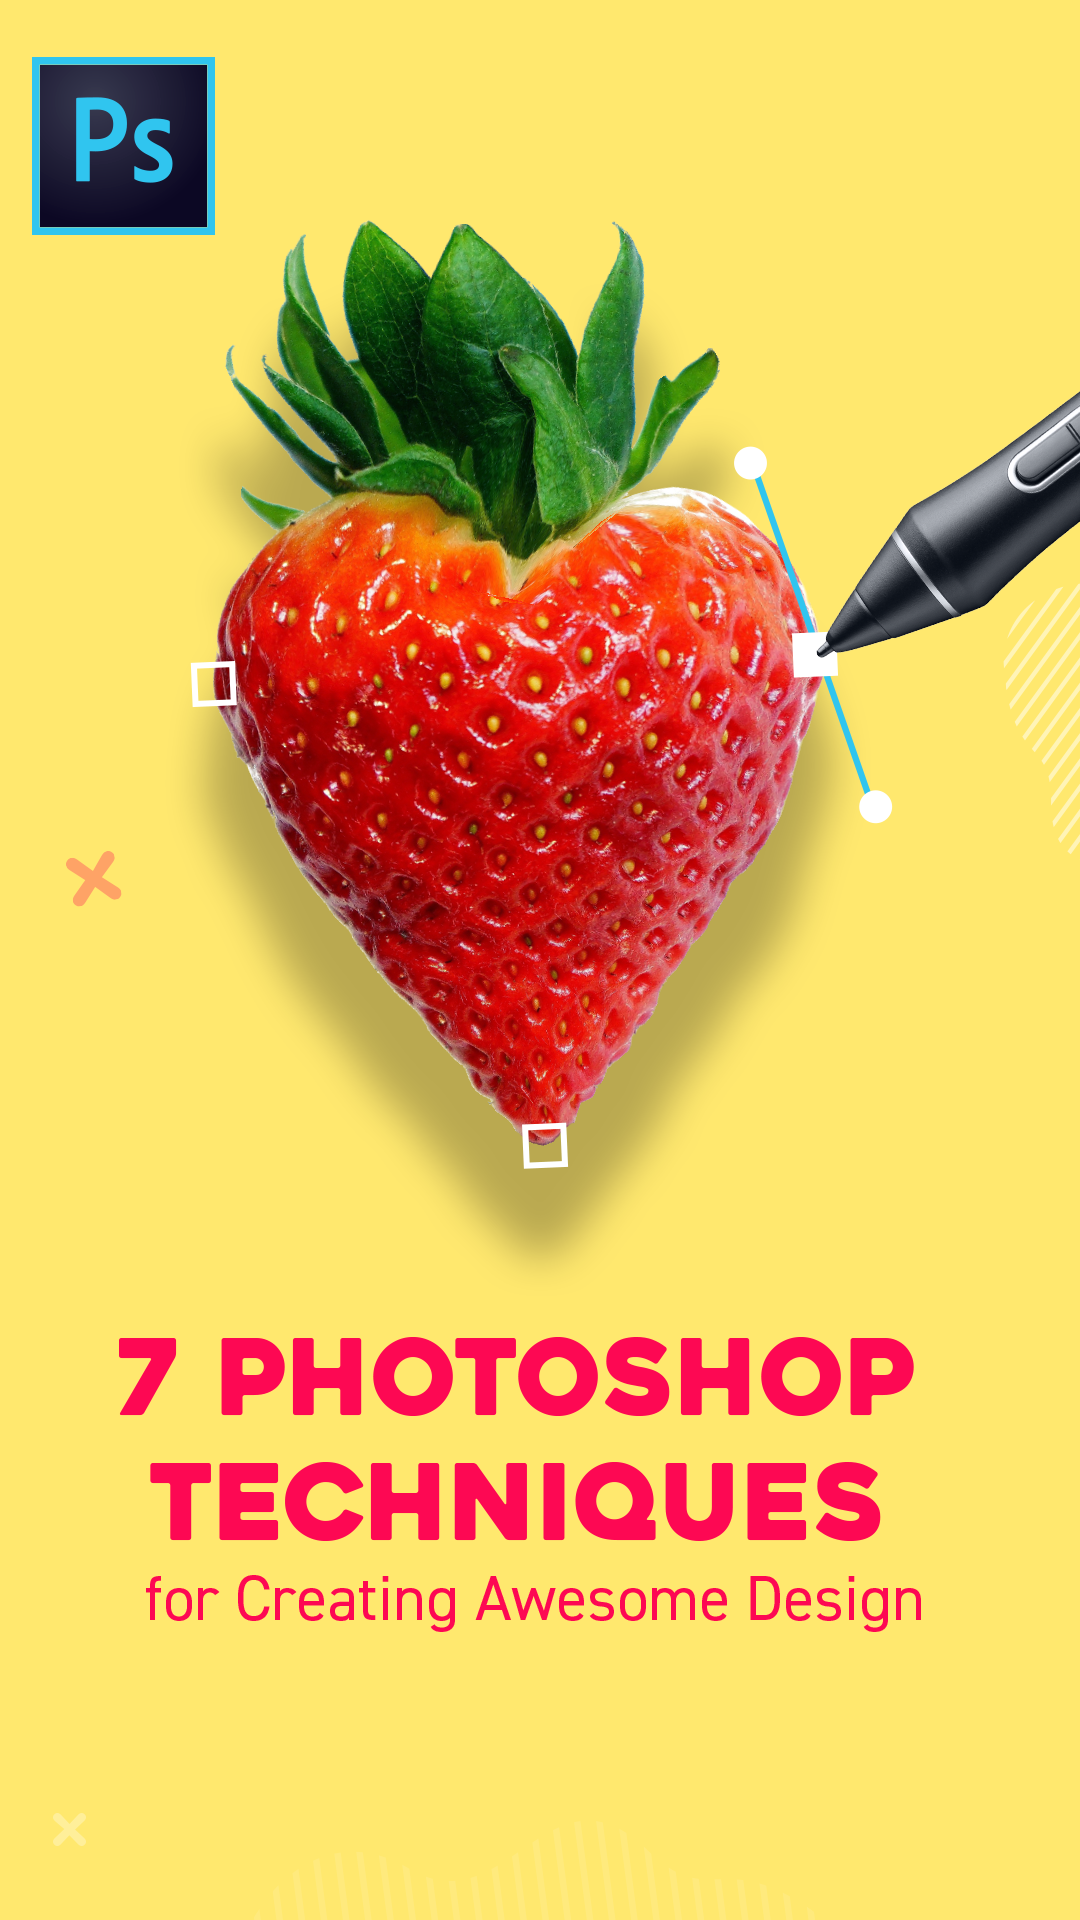 7 Photoshop Techniques for Creating Awesome Design